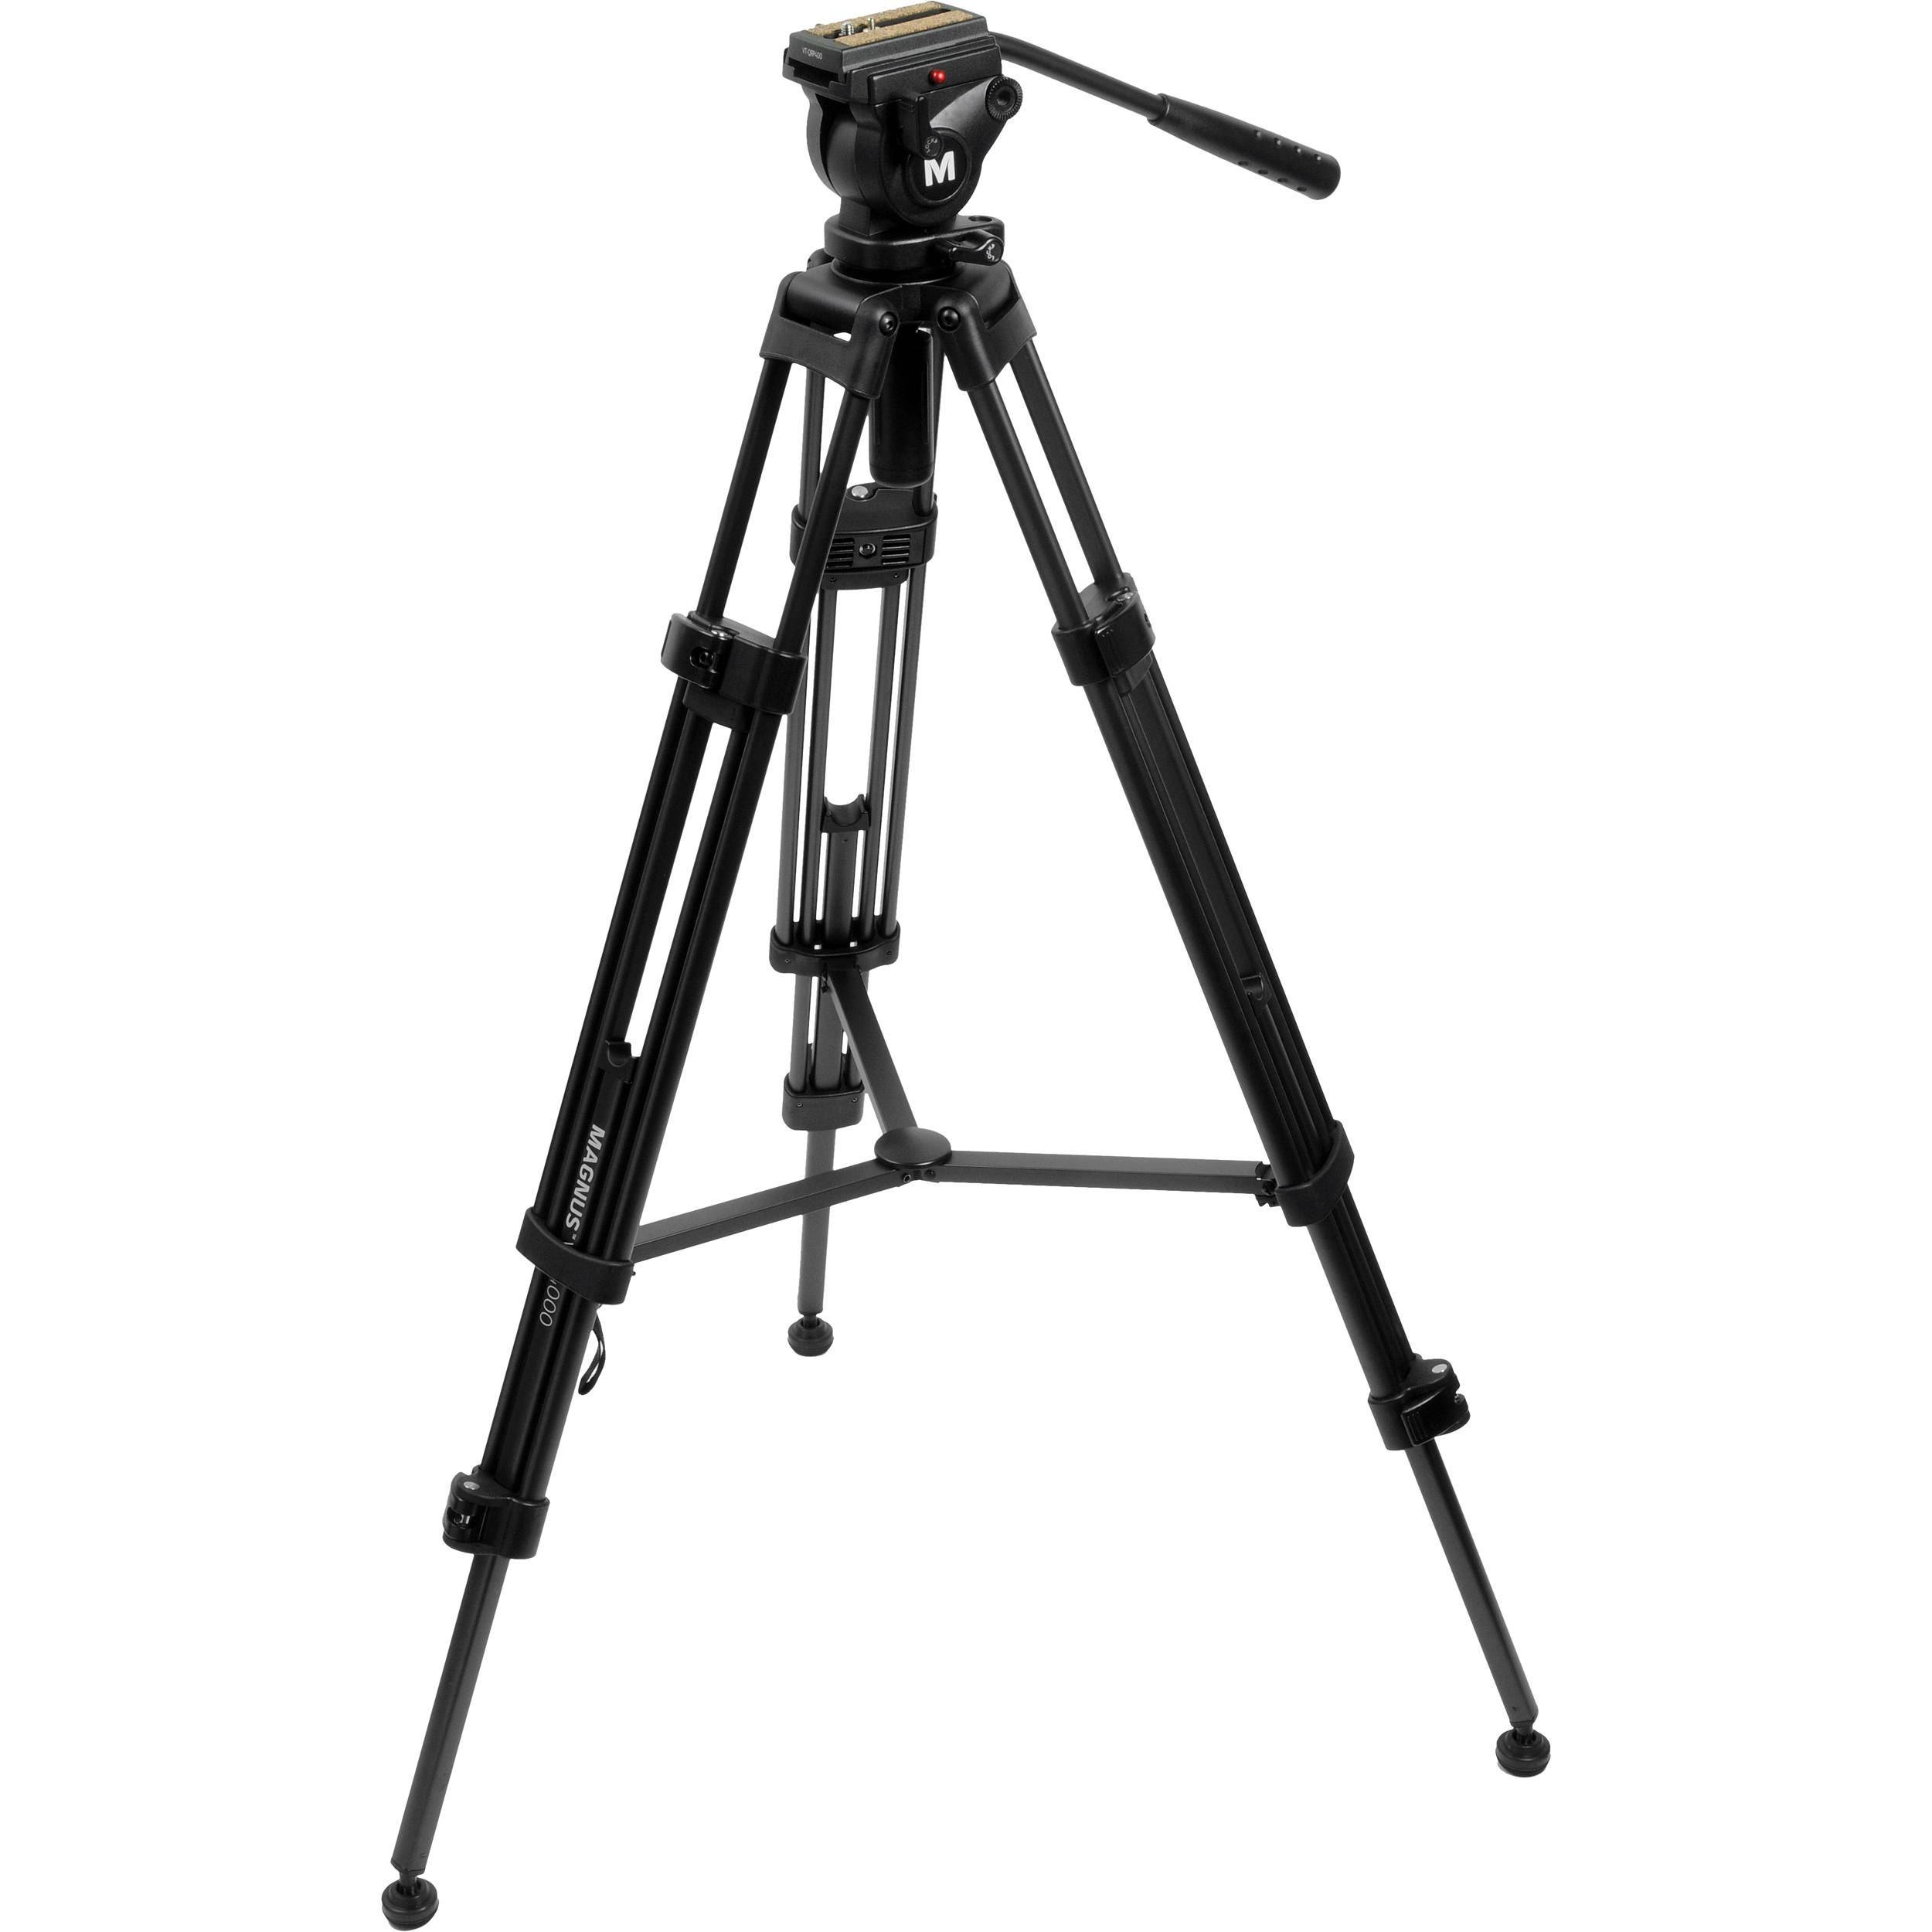 Magnus VT-4000 Tripod System with Fluid Head VT-4000 B&H Photo